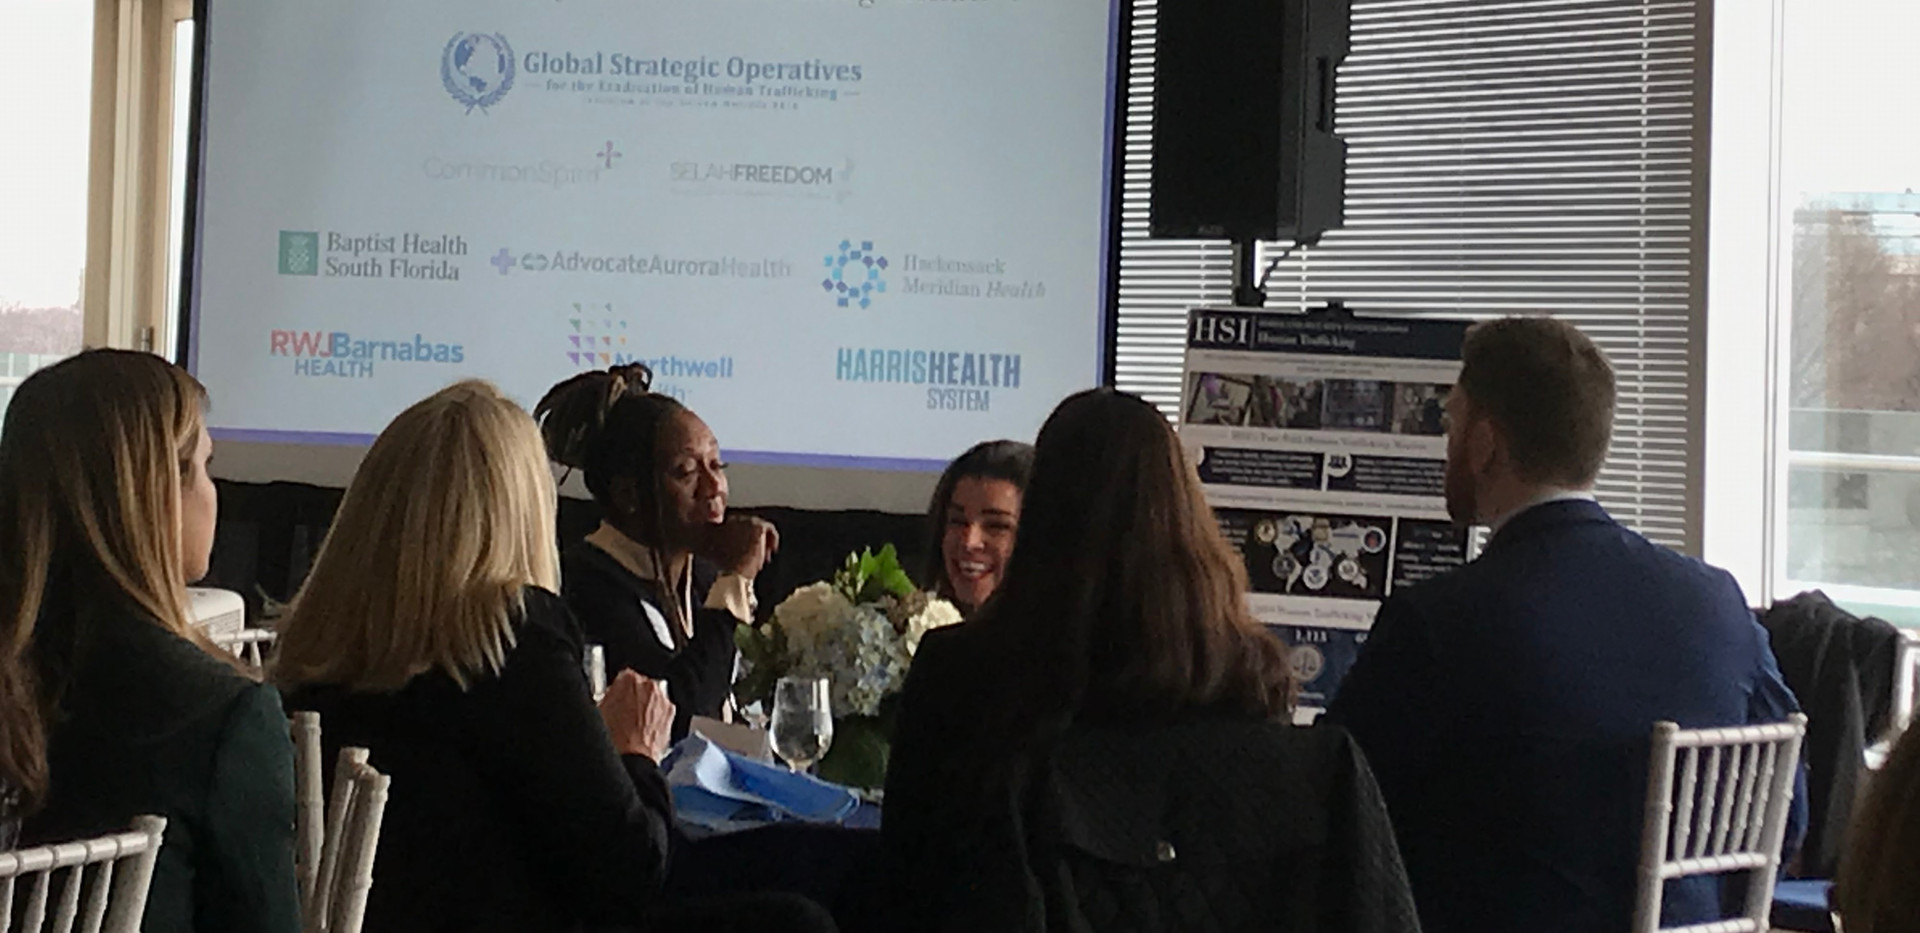 GSO and The Selah Way Foundation in DC